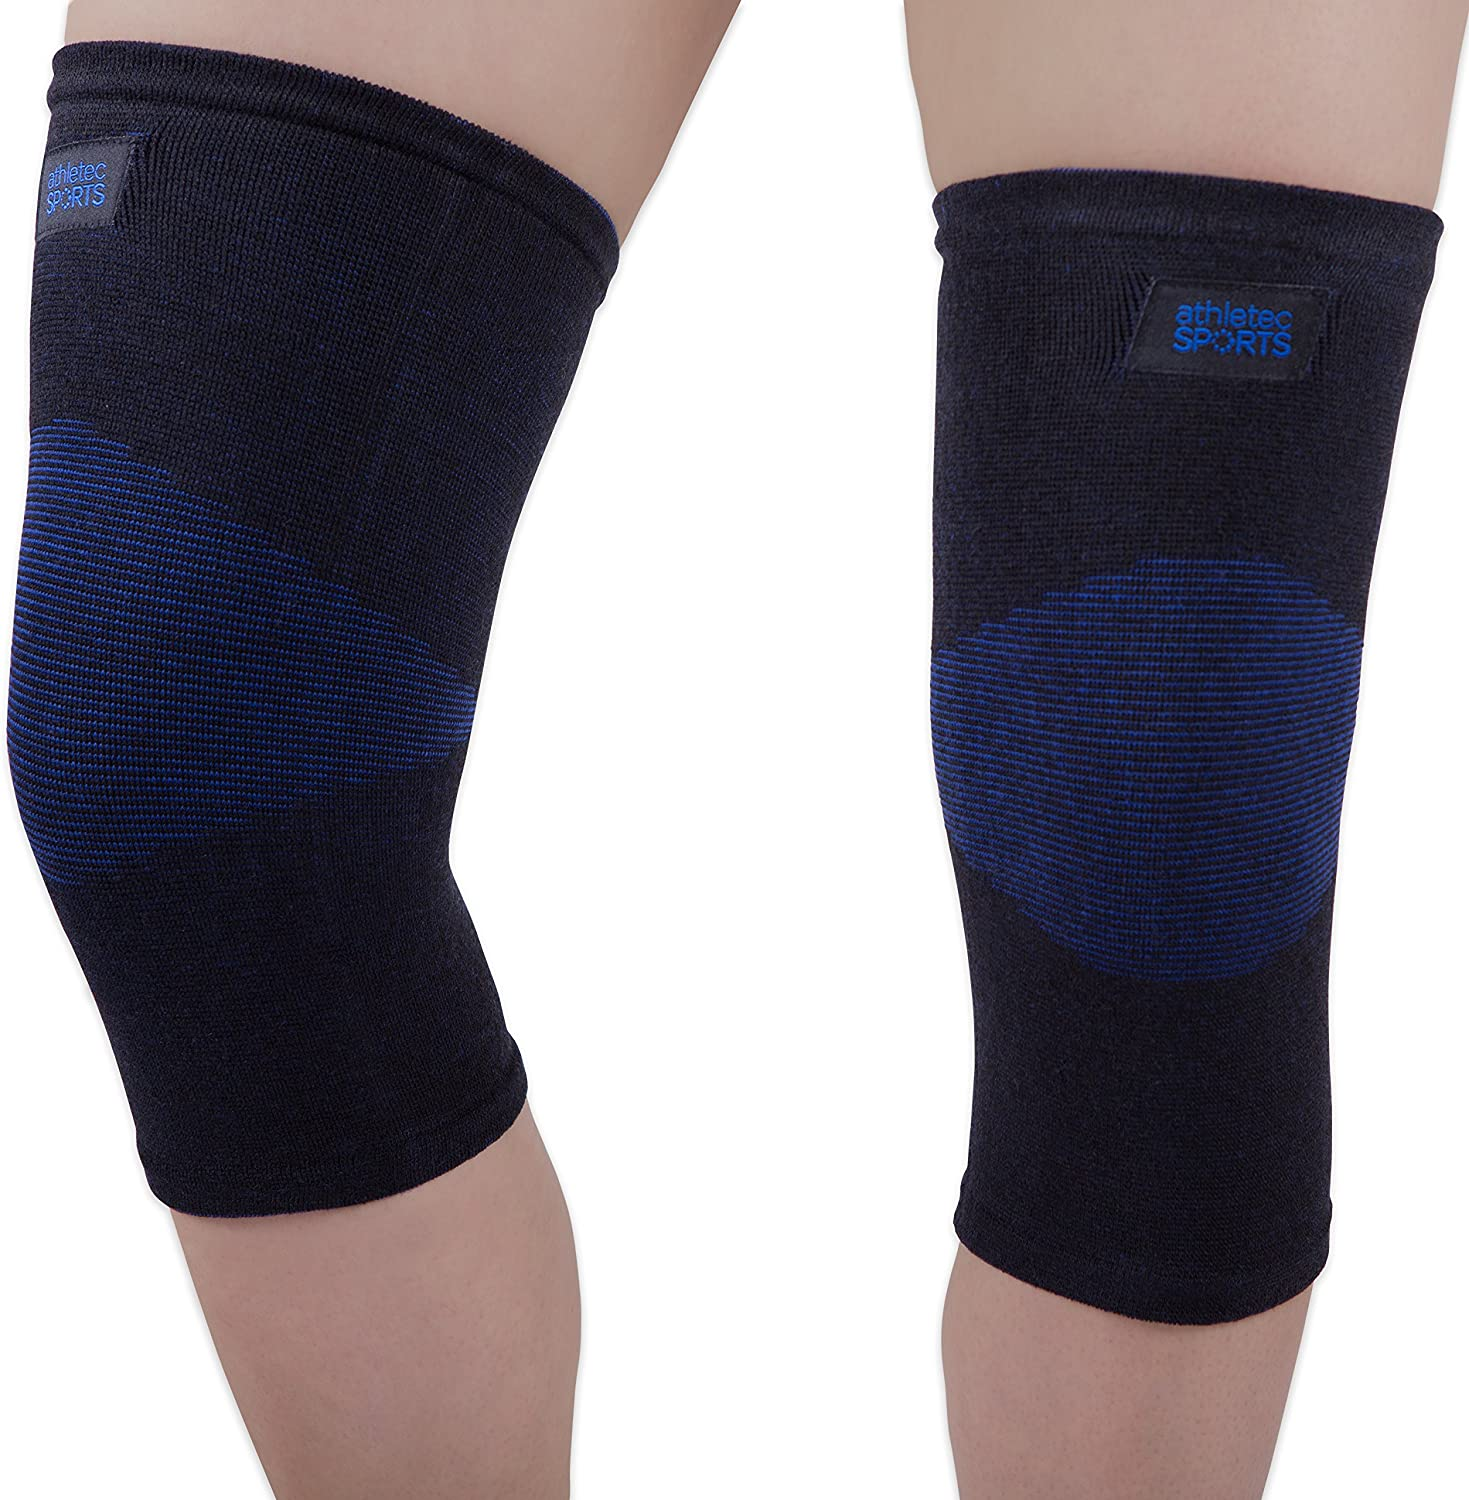 Athletec Sport Bamboo Charcoal Knee Compression Sleeve for Knee Pain, Joint  Pain, Arthritis Relief, Meniscus Tear and Support for Running, Walking, ...